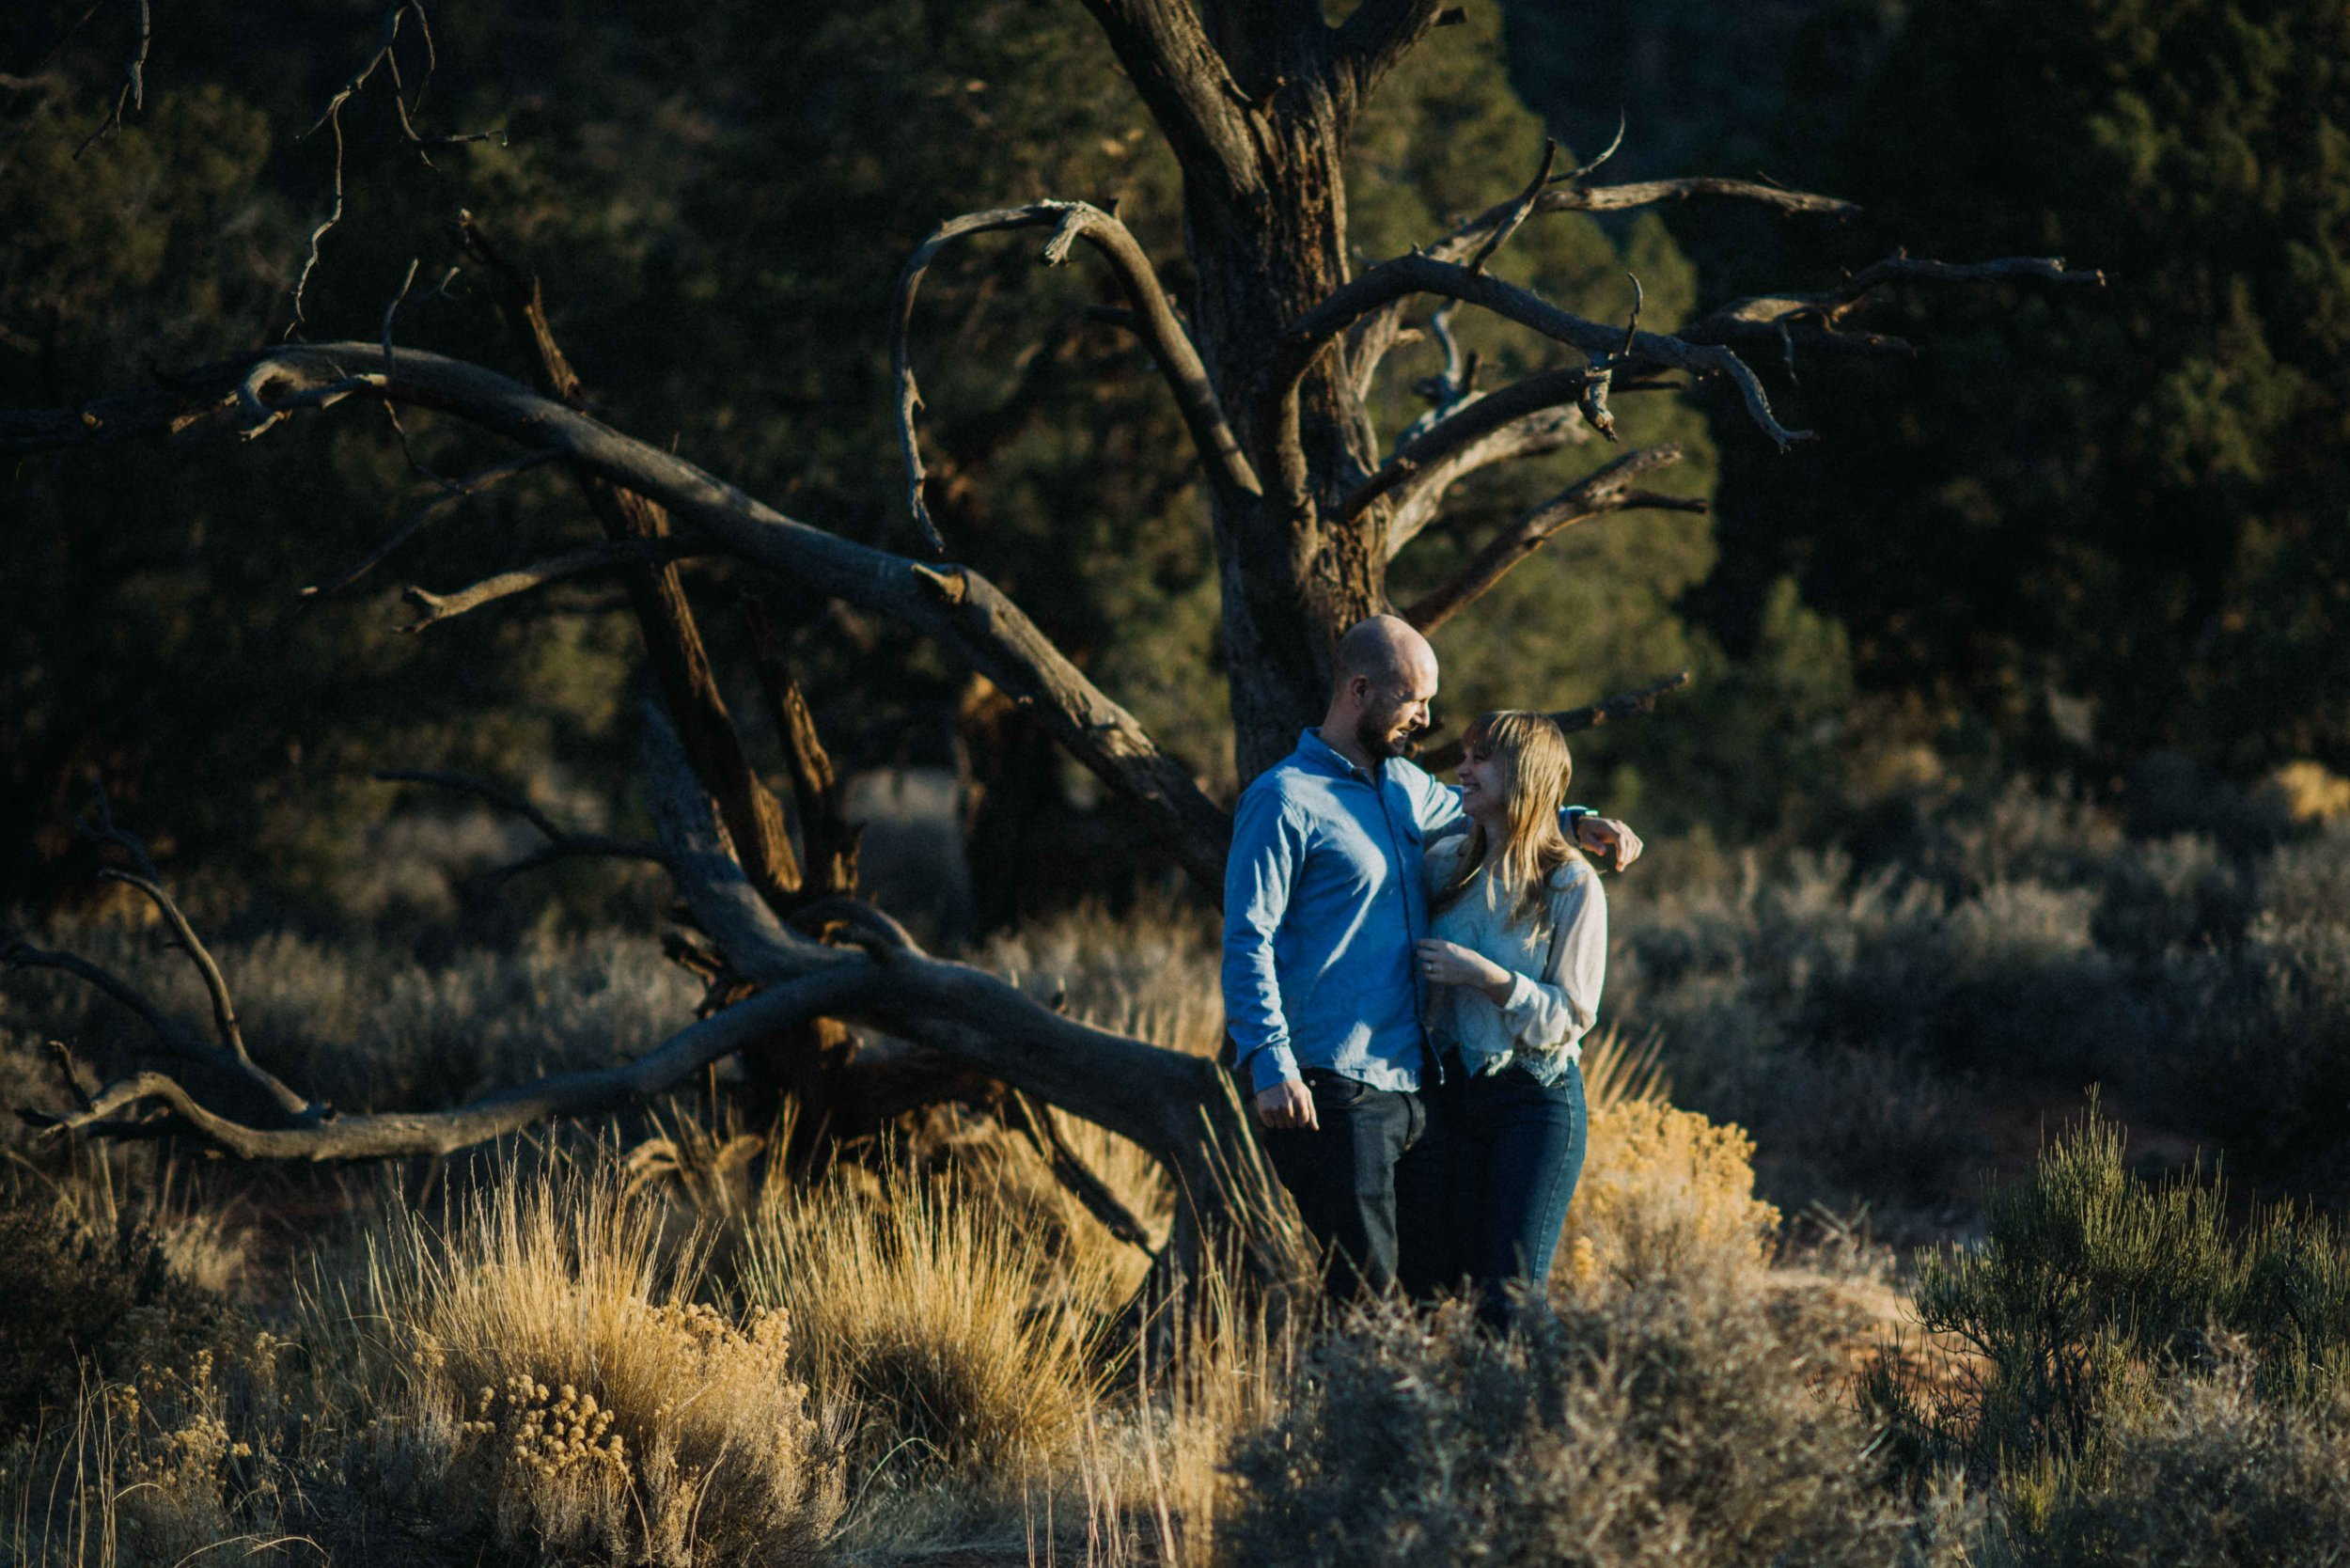 zion_national_park_utah_wedding_photography_engagement-3193.JPG